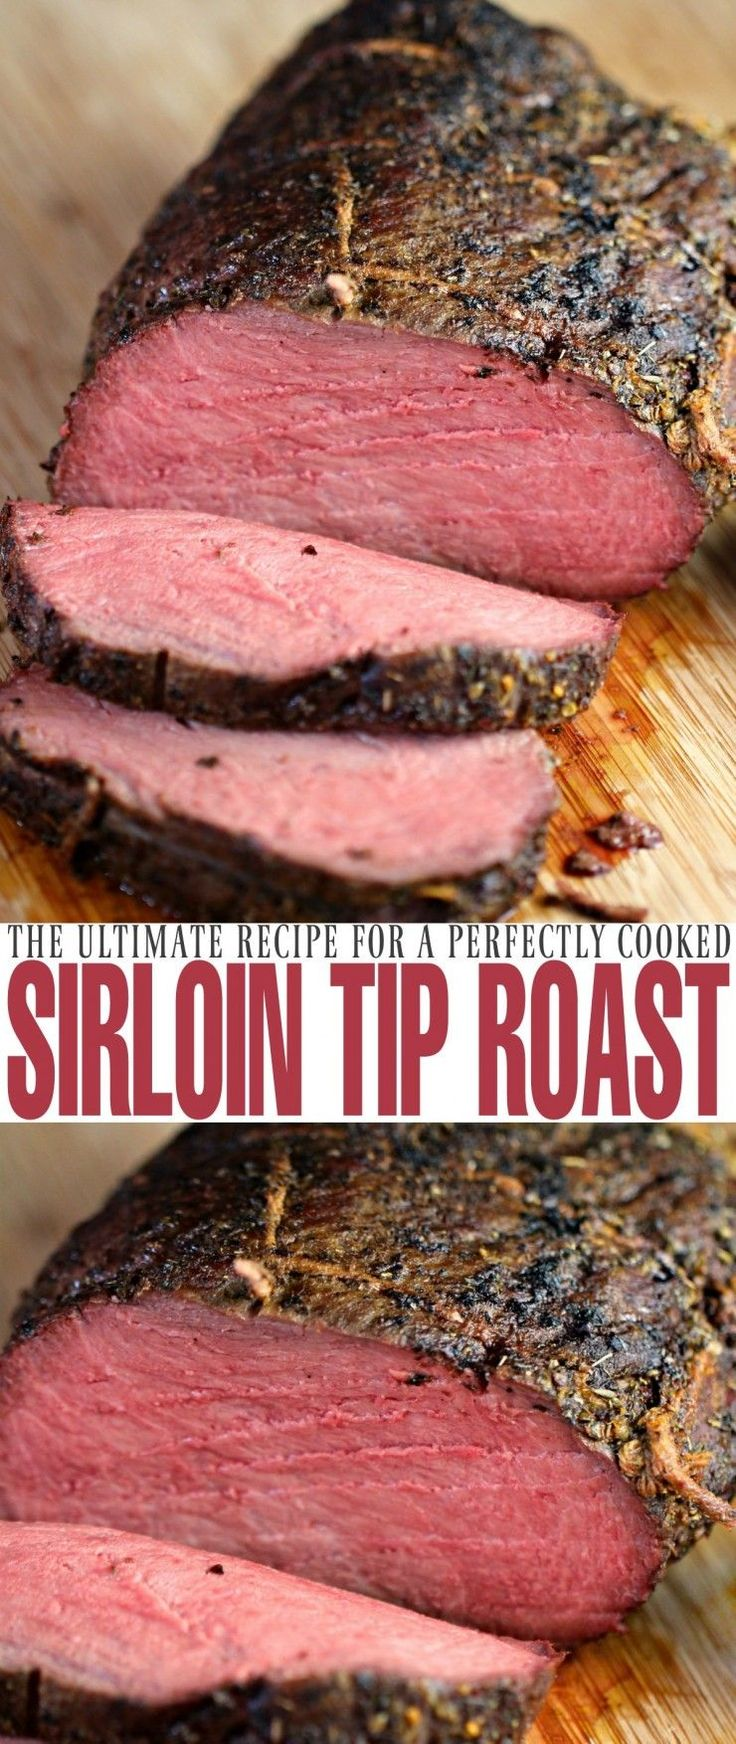 how to cook sirloin strip steak in oven